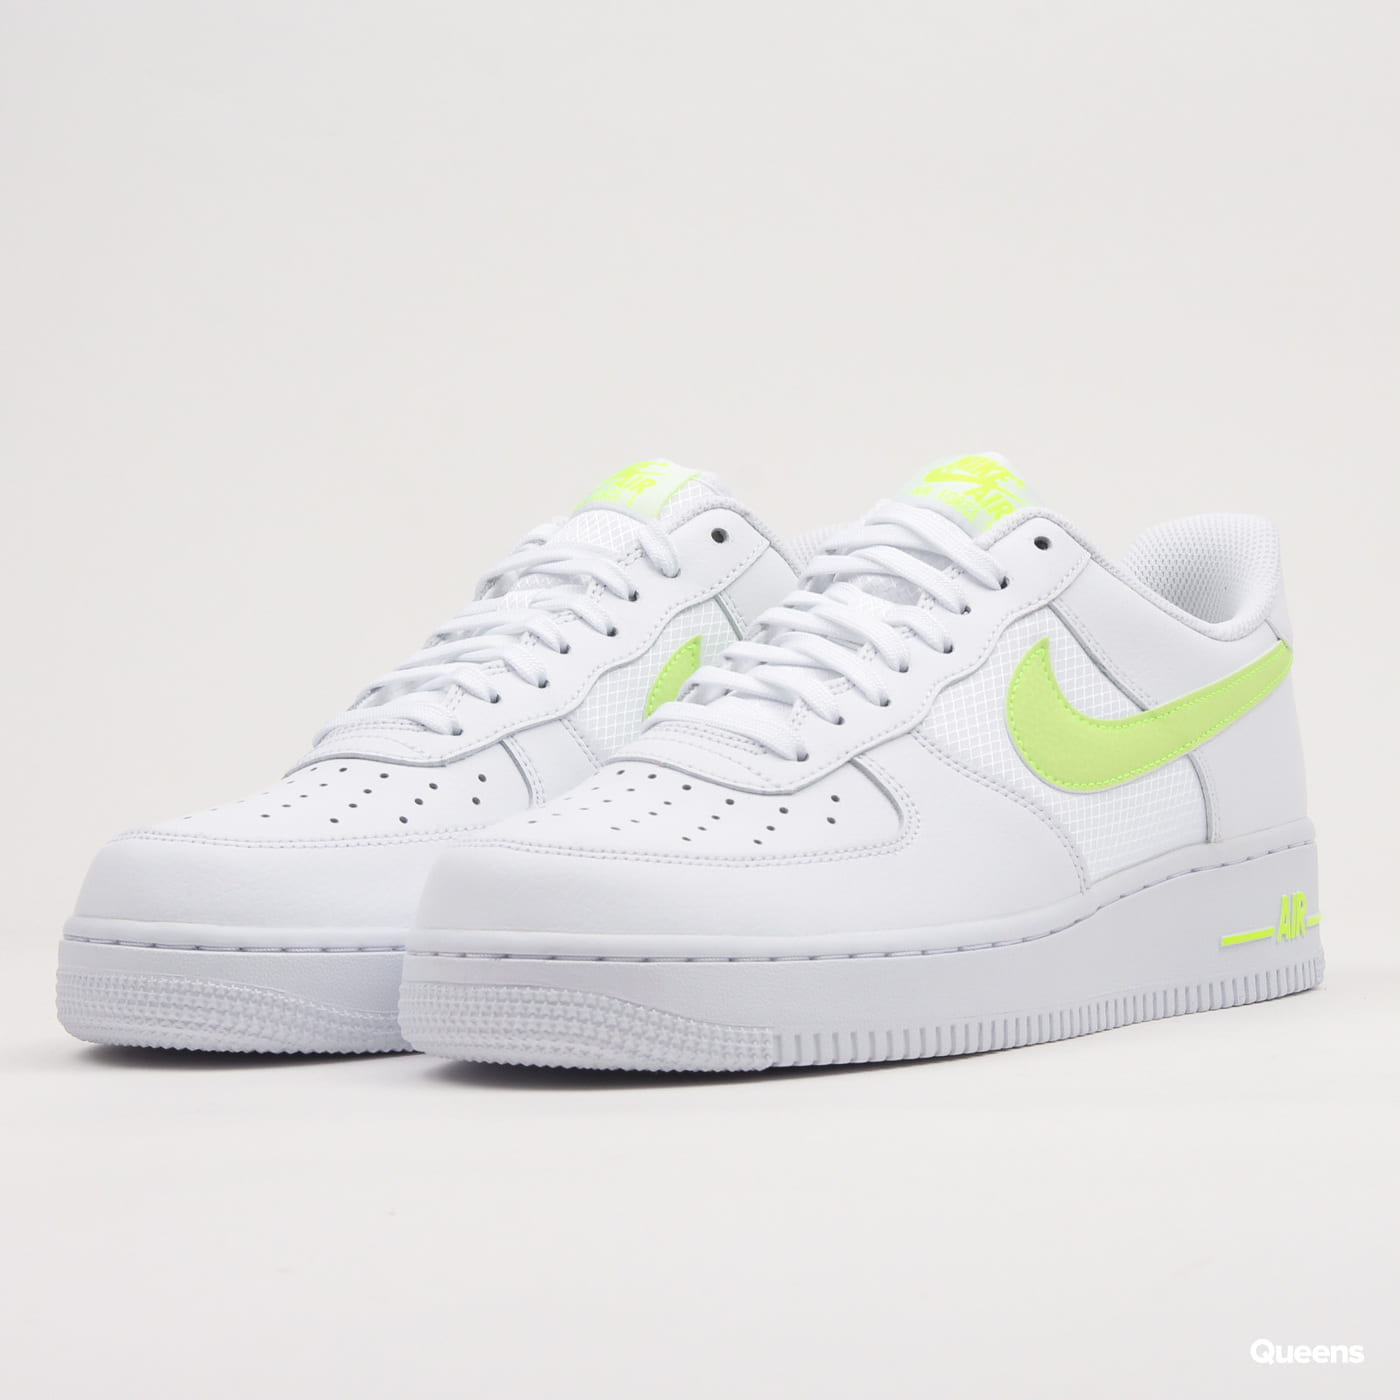 Nike Air Force 1 '07 LV8 white / volt